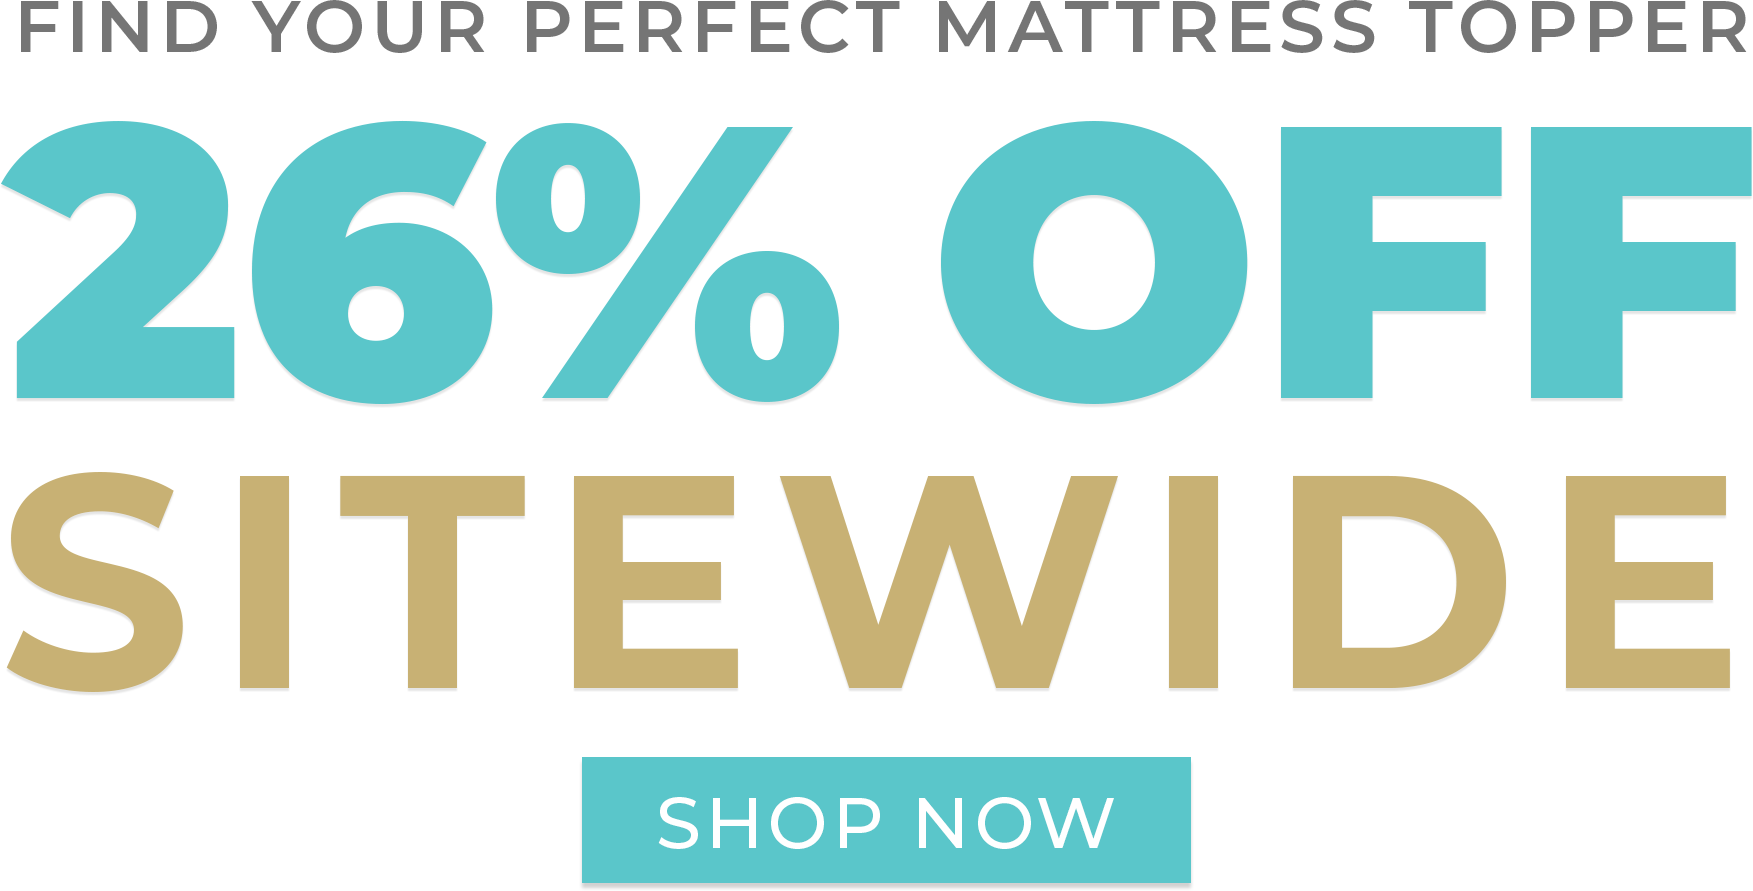 Find your Perfect Mattress Topper - 26% off sitewide - Shop Now